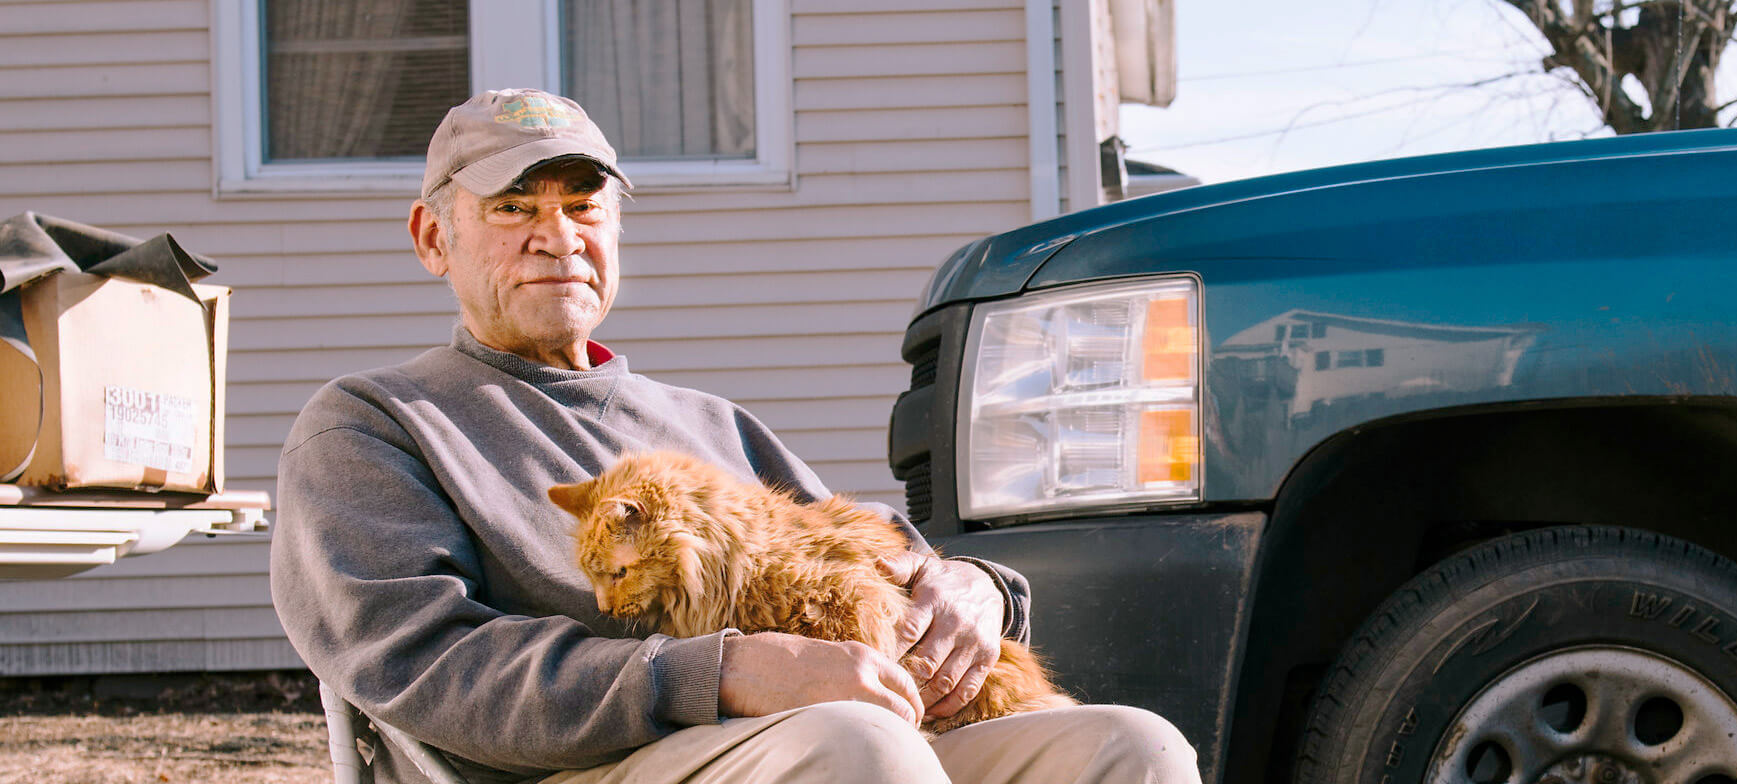 Elderly man sitting outside with his cat on his lap